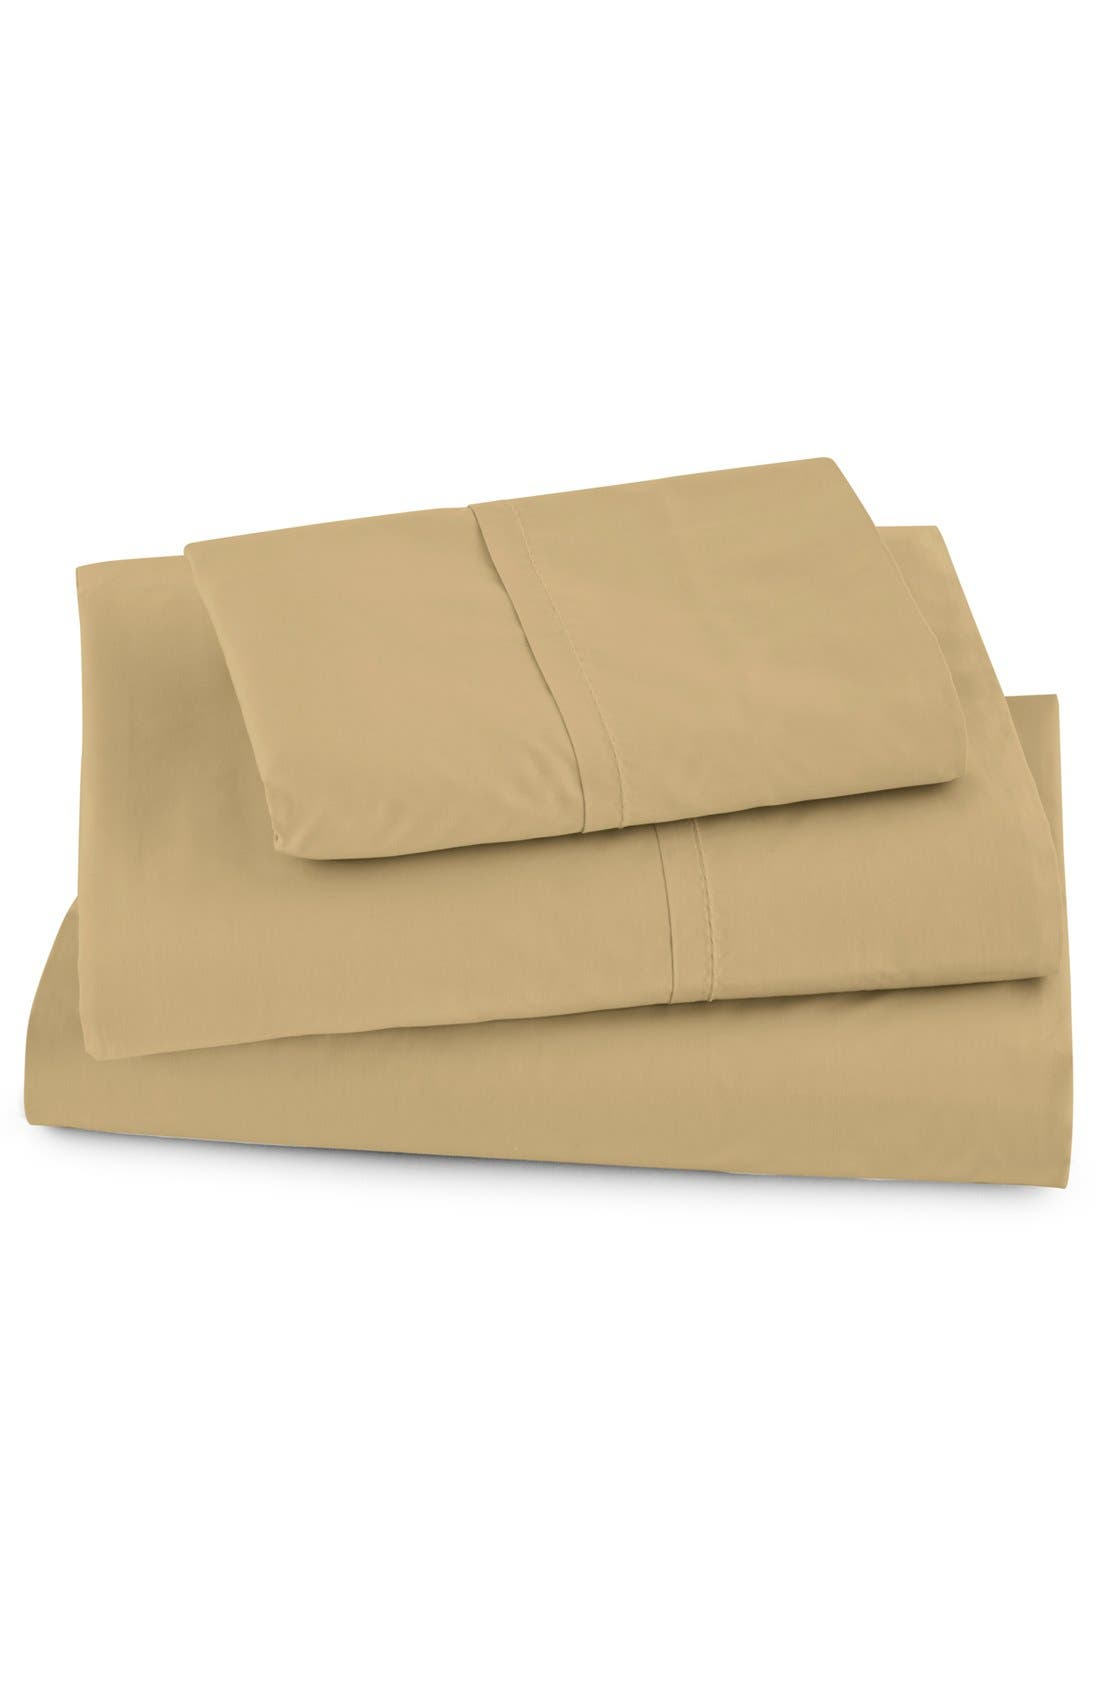 Alternate Image 1 Selected - Donna Karan 'Modern Classics' 400 Thread Count Pillowcase (Online Only)